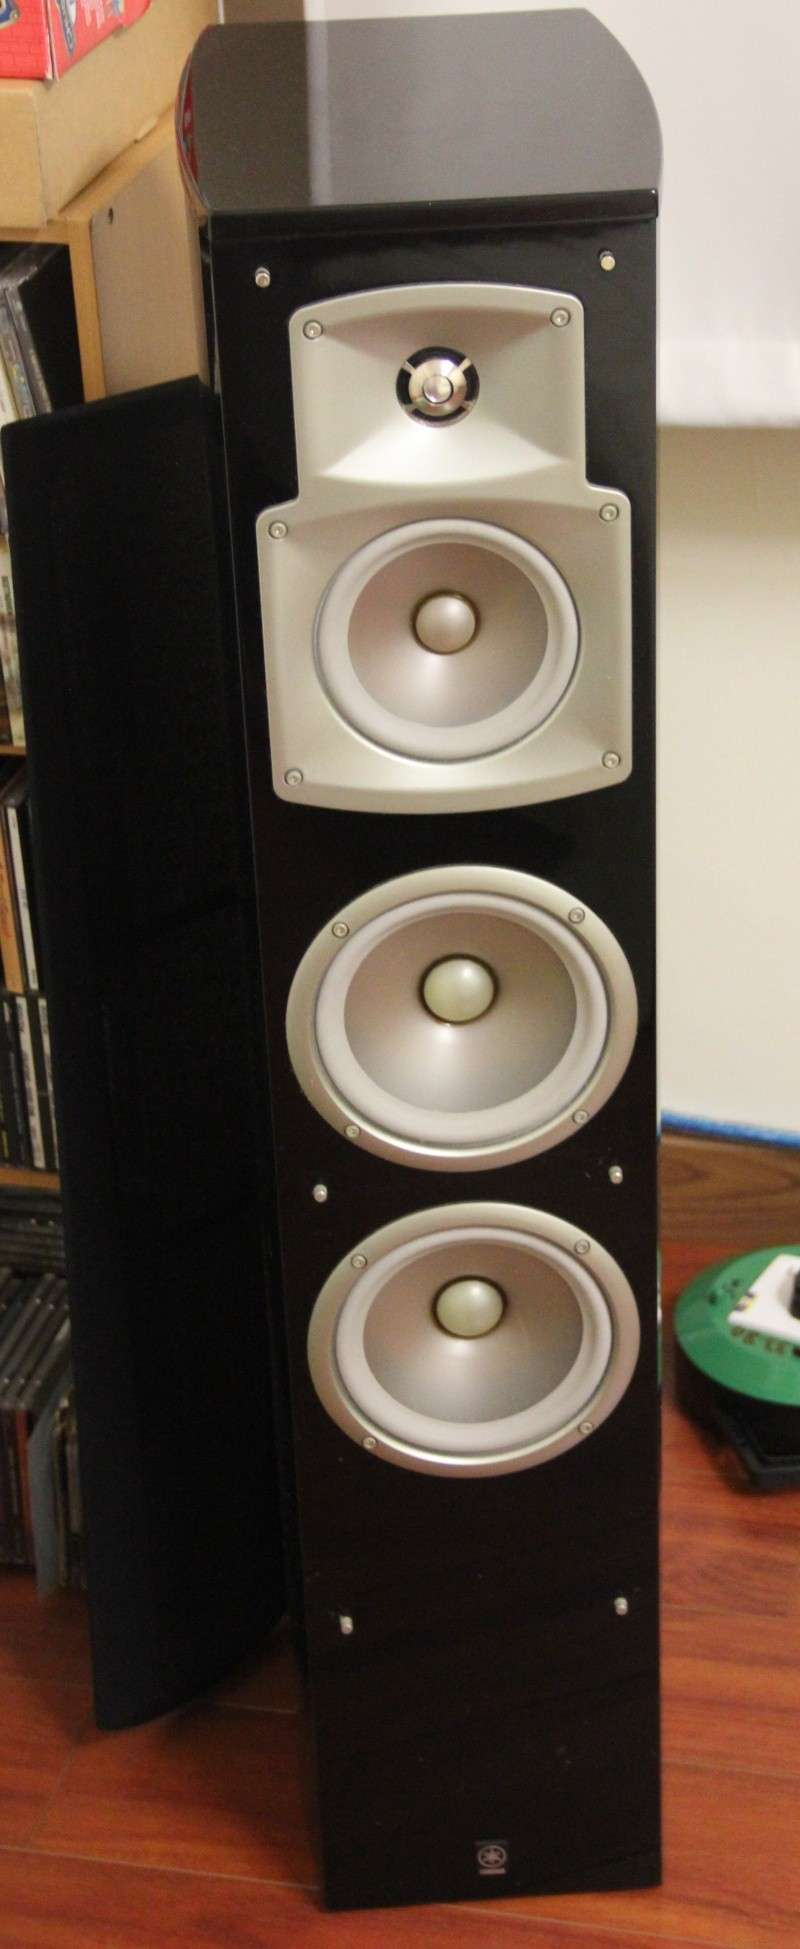 Yamaha ns 555 and ns c444 price reduced for Yamaha ns sw40 price